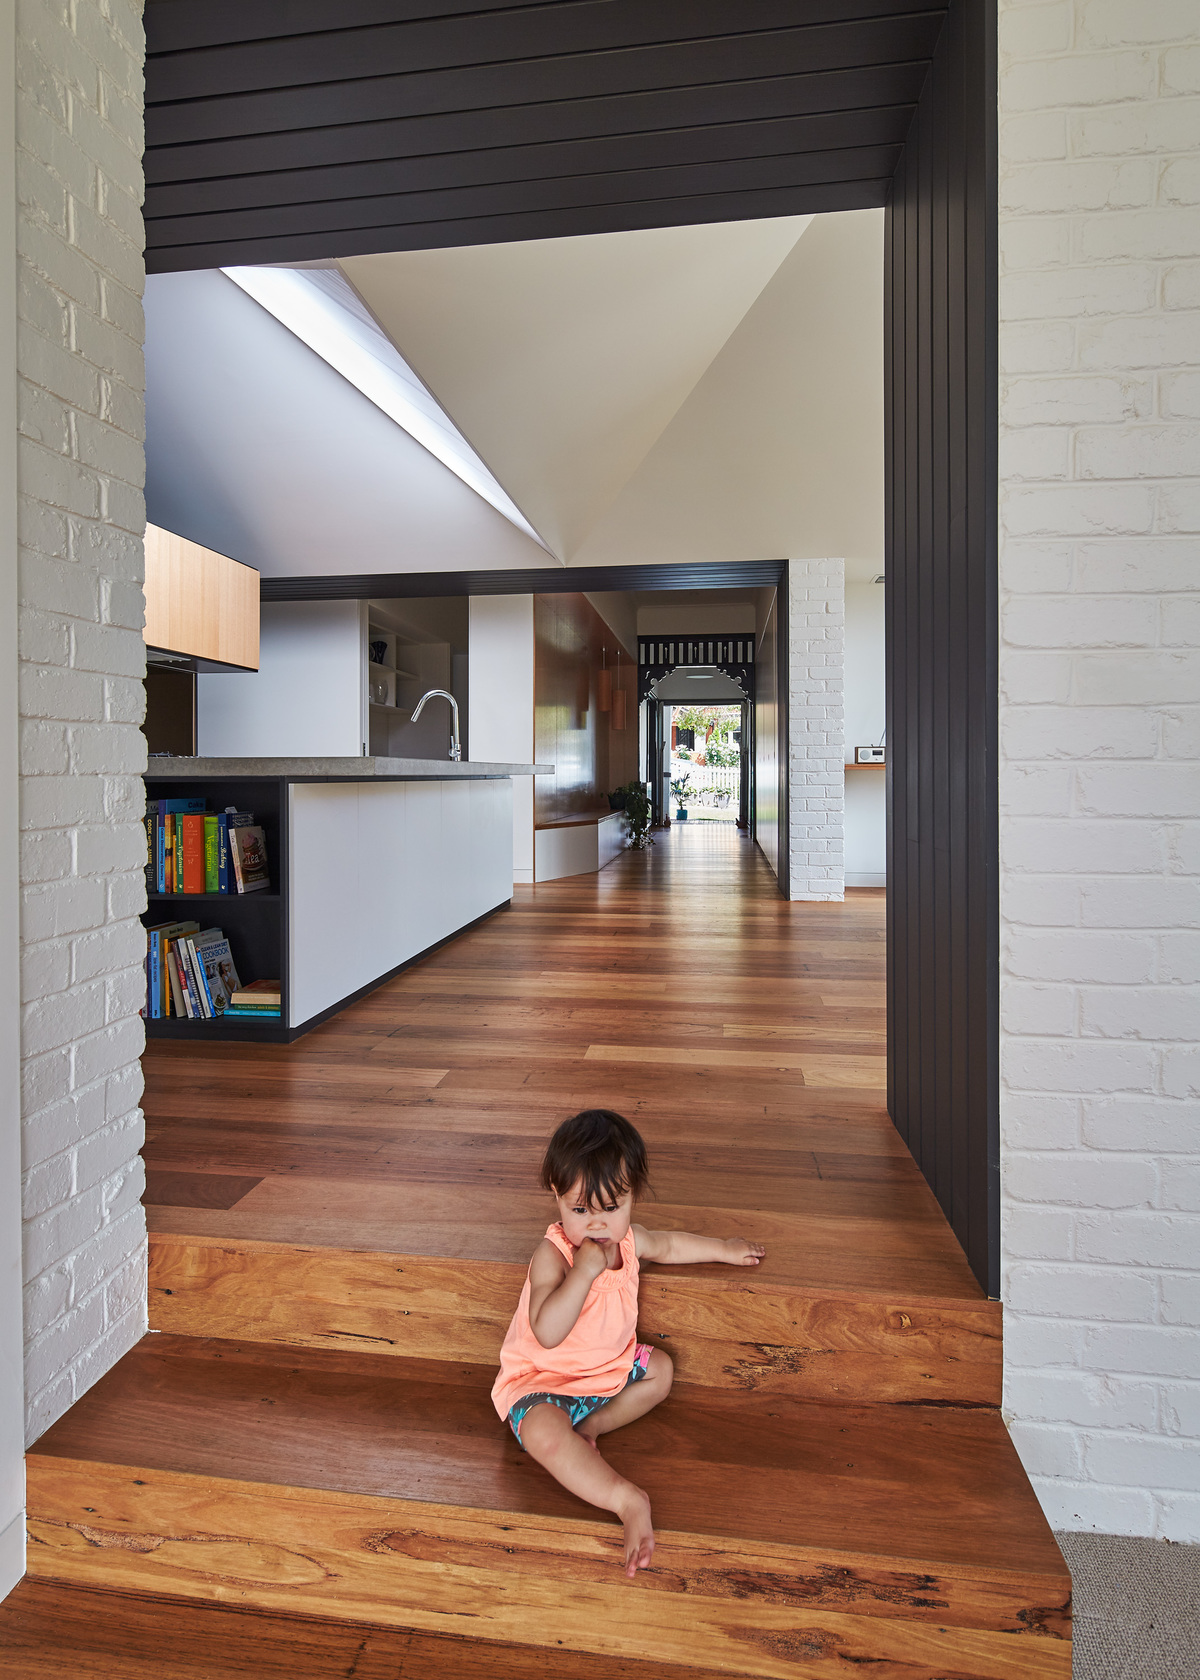 Hip & Gable House: When the Roof is More than Just a Roof